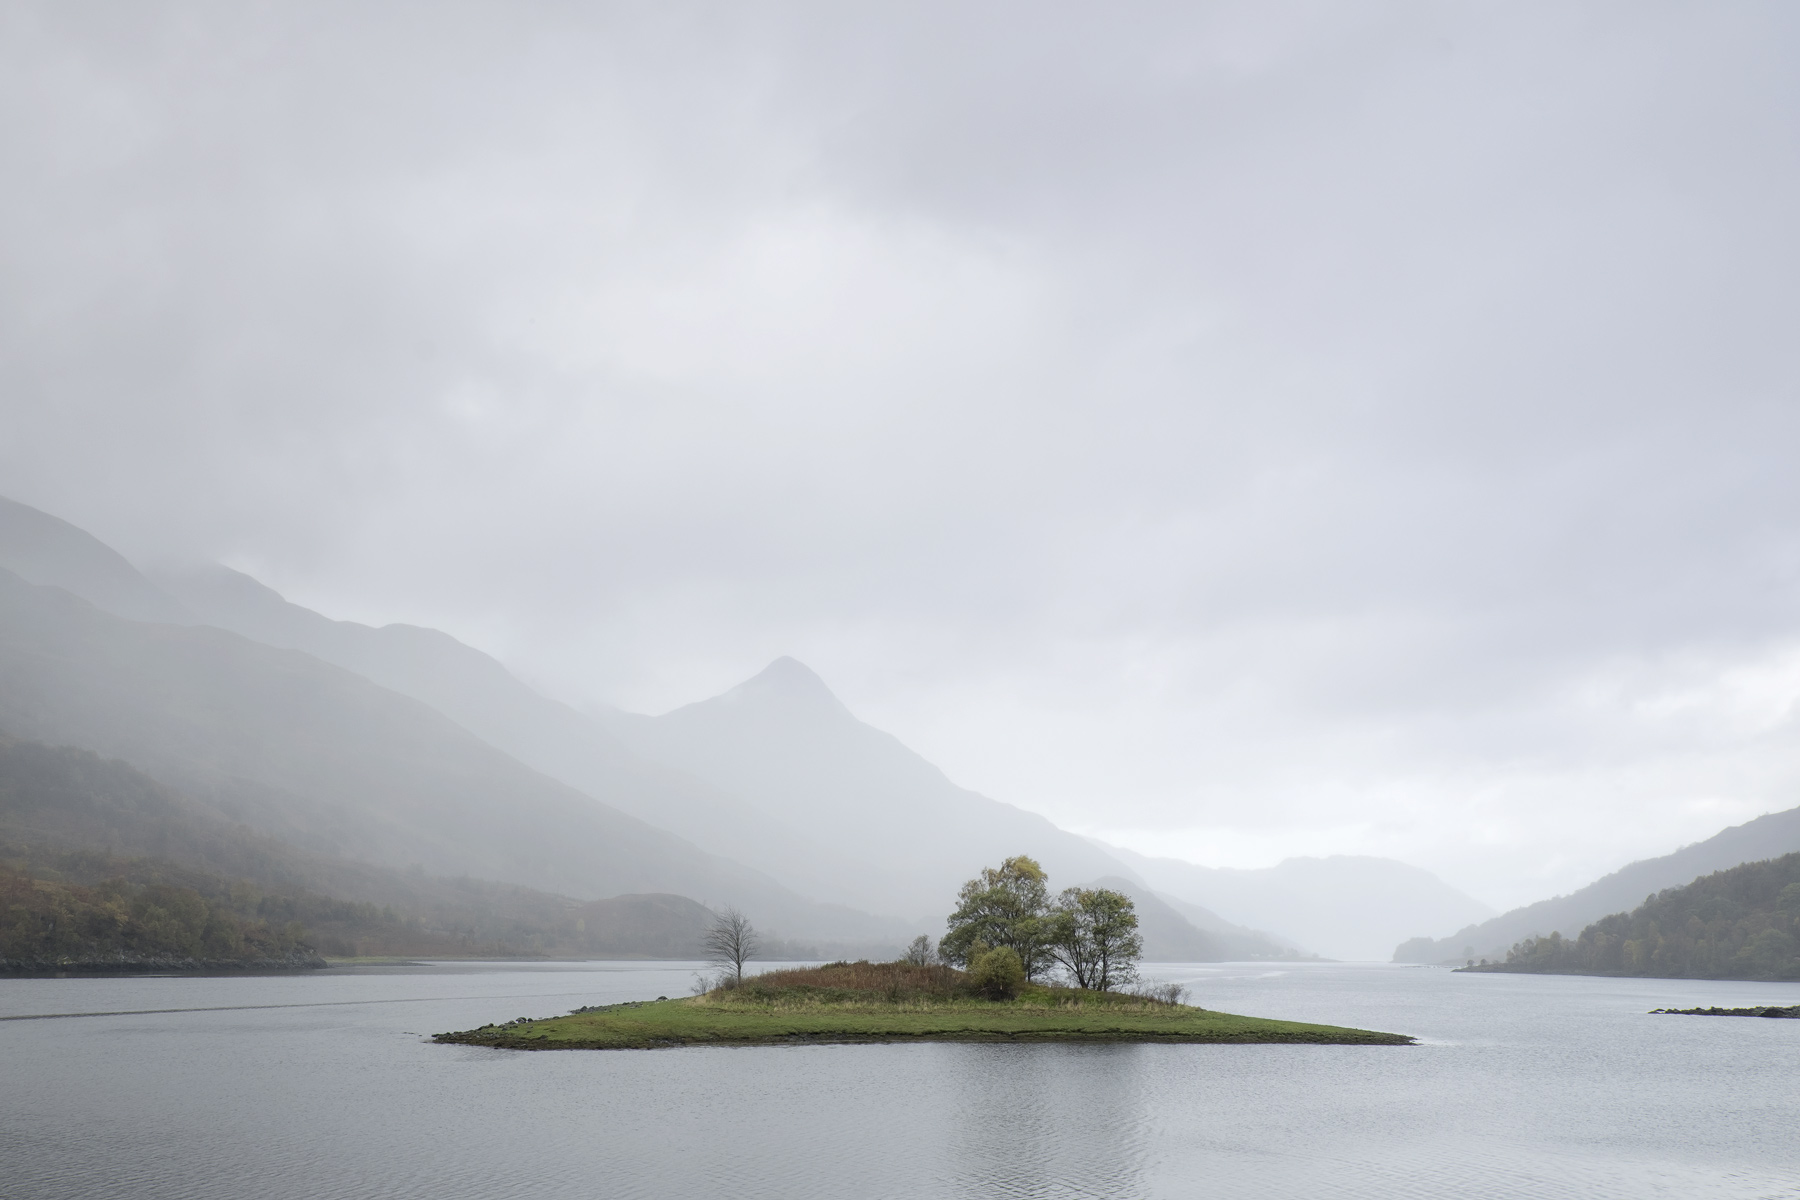 Gently, Loch Leven, Highlands, Scotland, cloud, mist downpours heaviest, rain, peaks, Pap, mountains, recession, paler, , photo